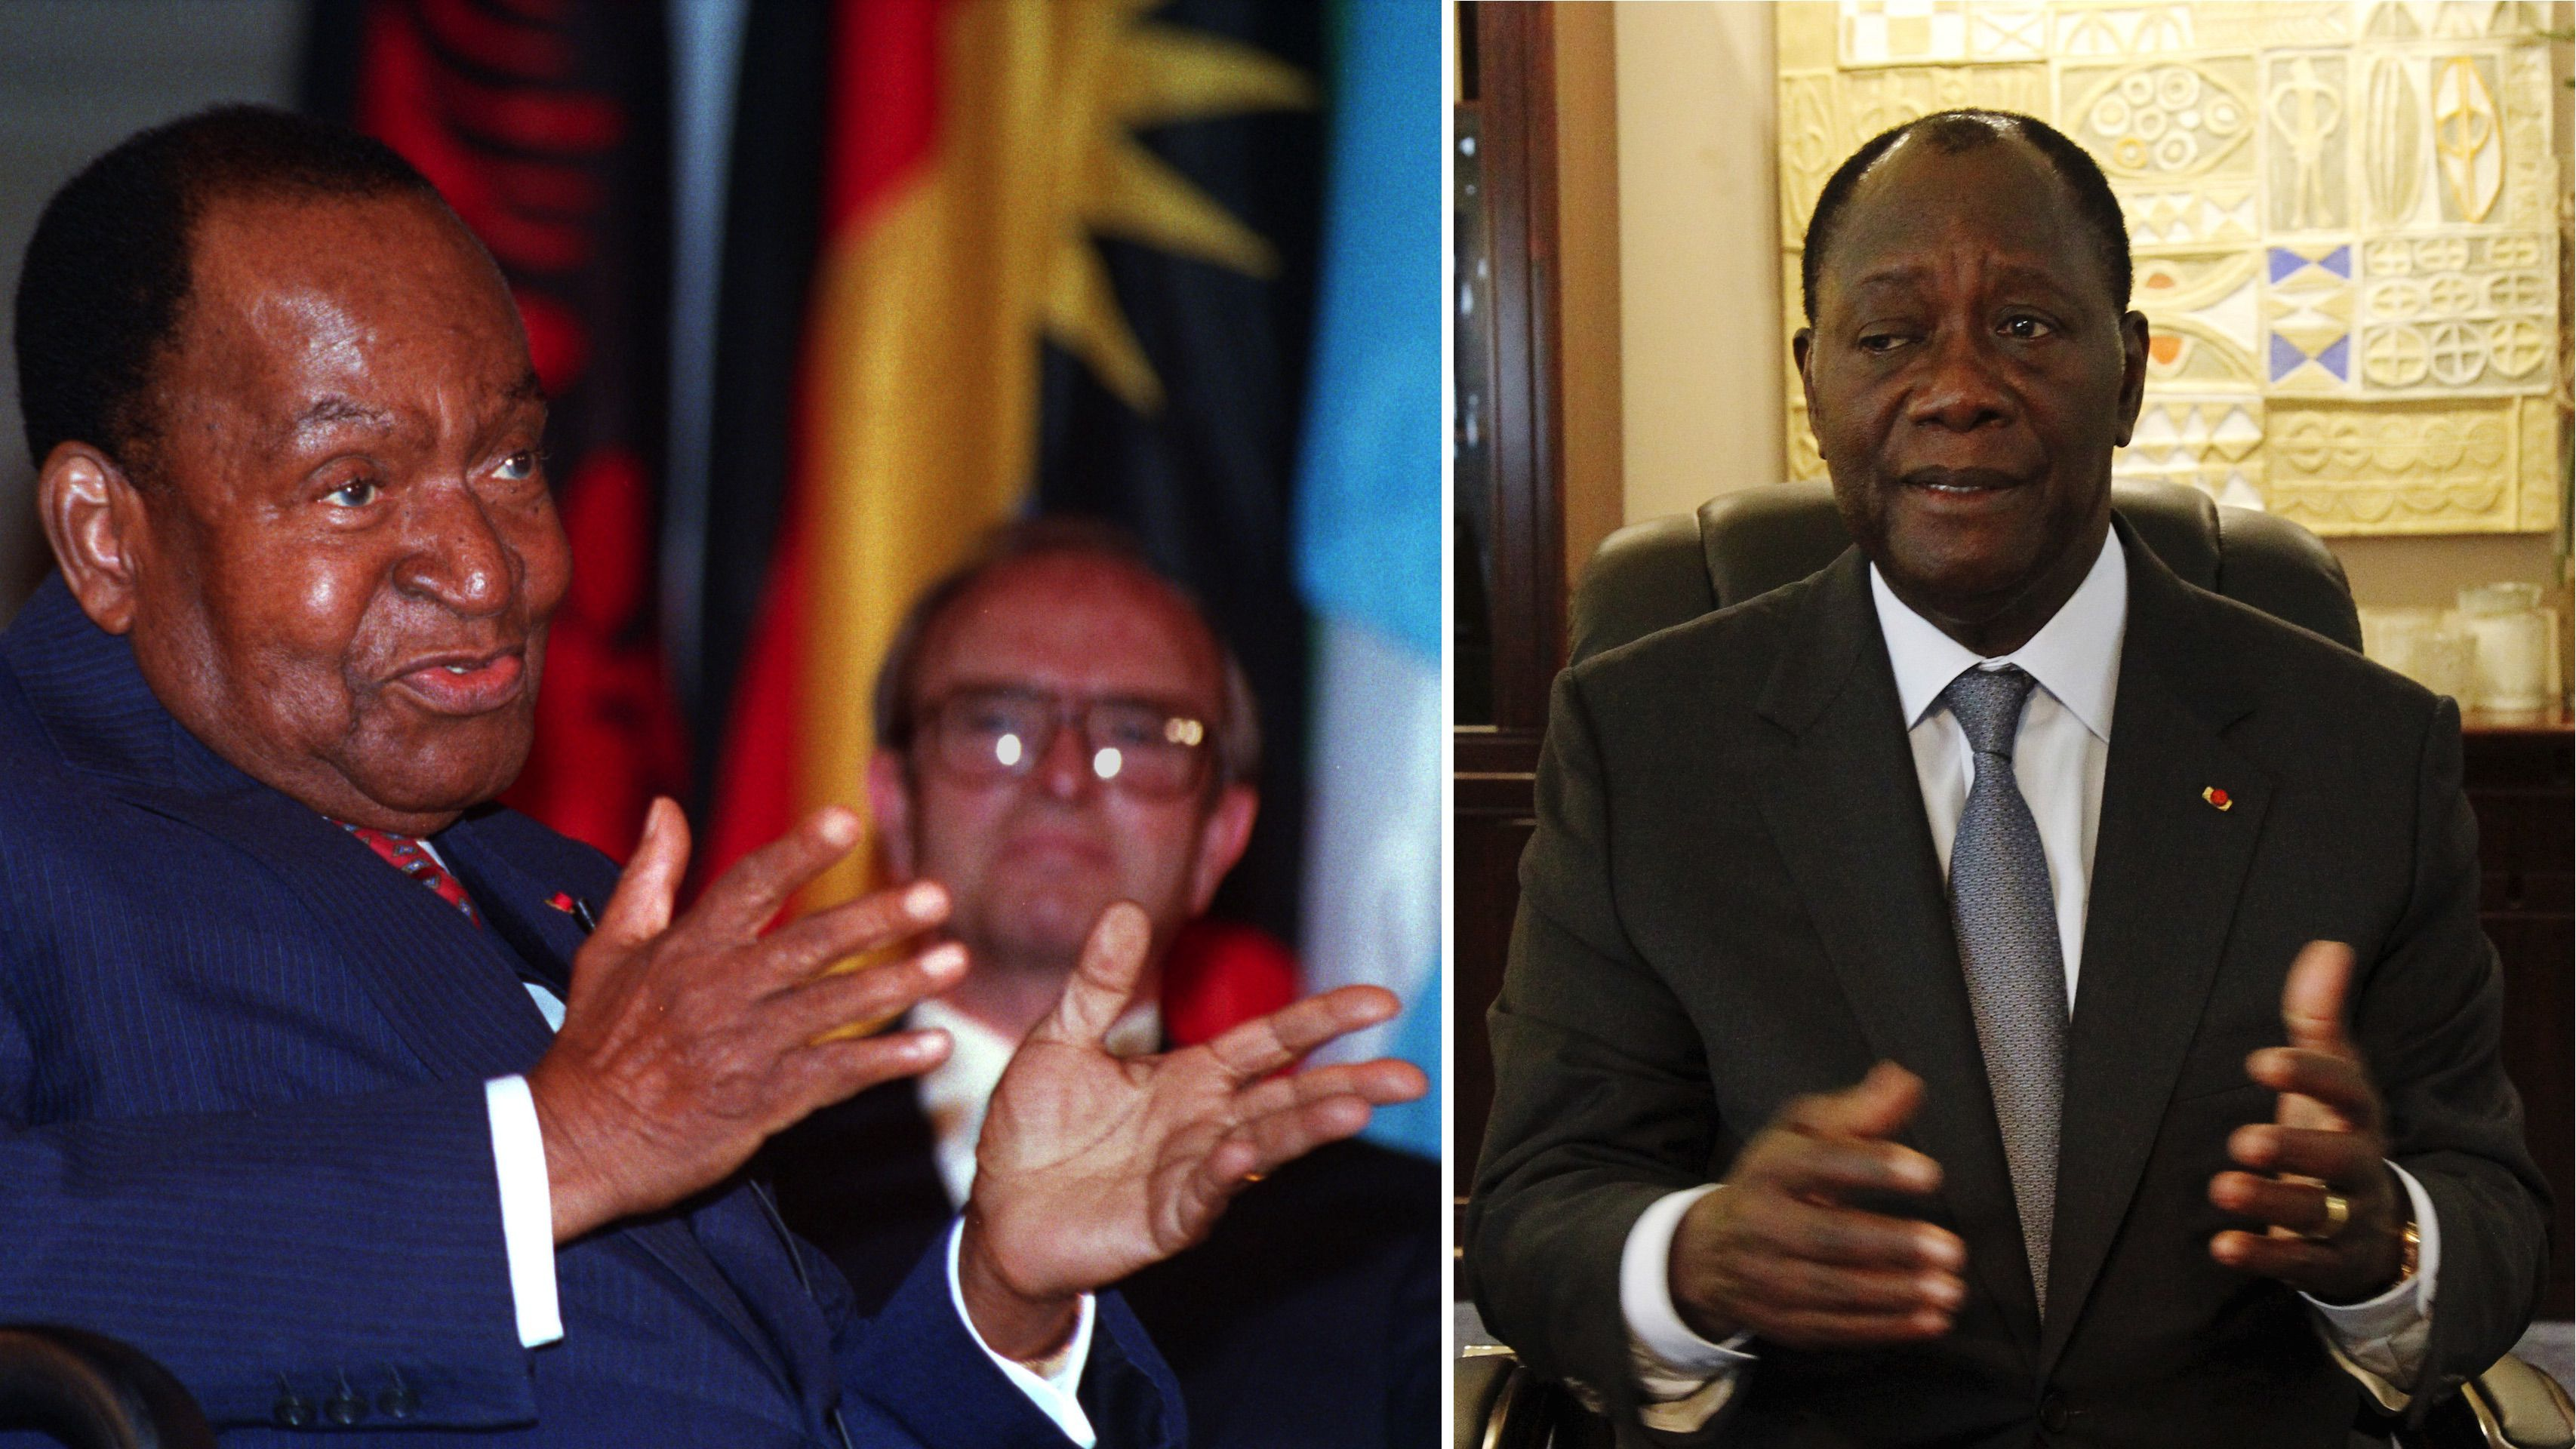 Félix Houphouët-Boigny in 1993 (left) and Alassane Ouattara in 2015 (right)